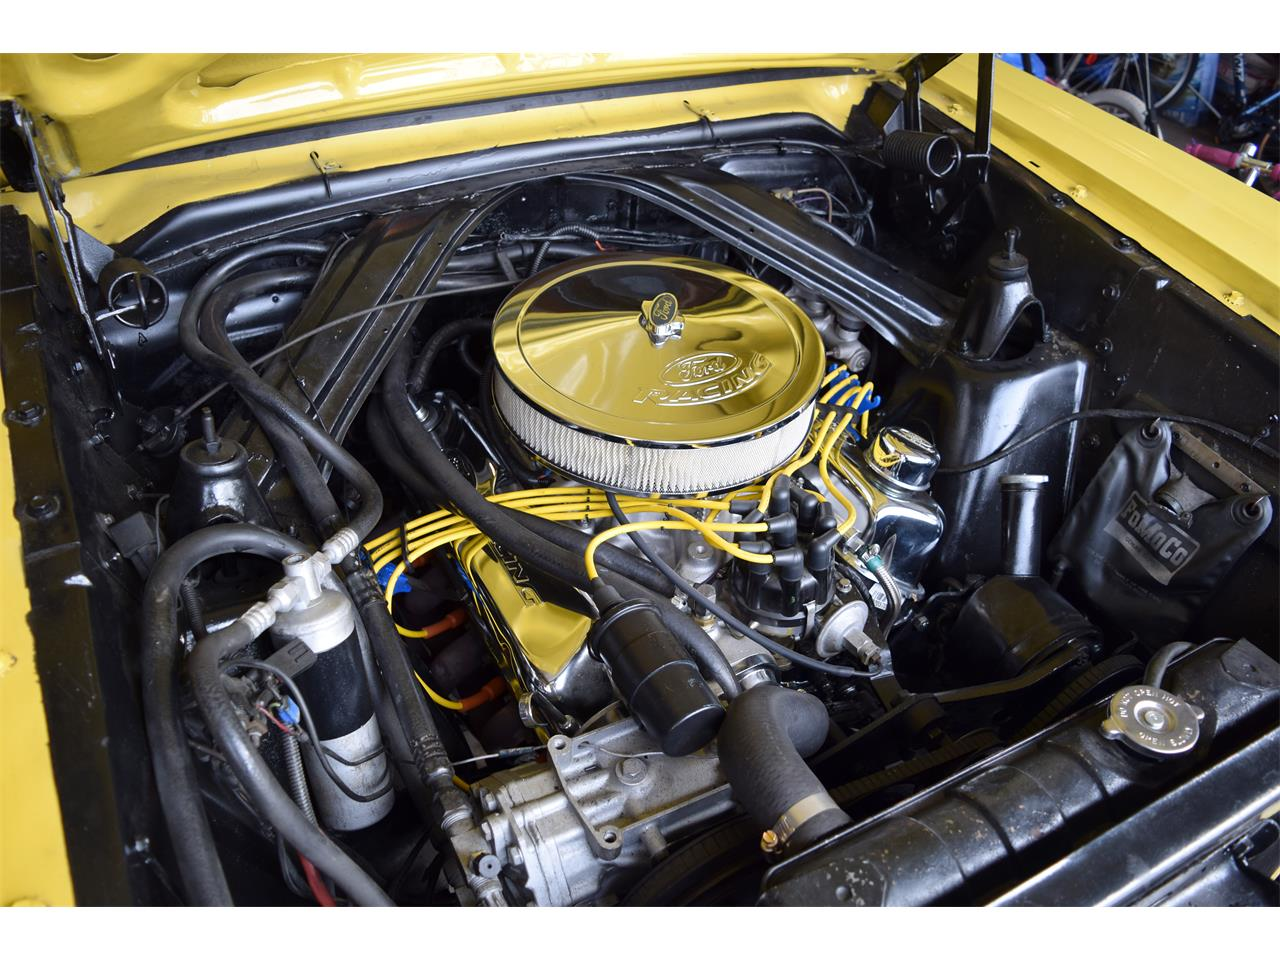 Large Picture of Classic 1965 Ford Falcon Futura Offered by a Private Seller - QEVQ